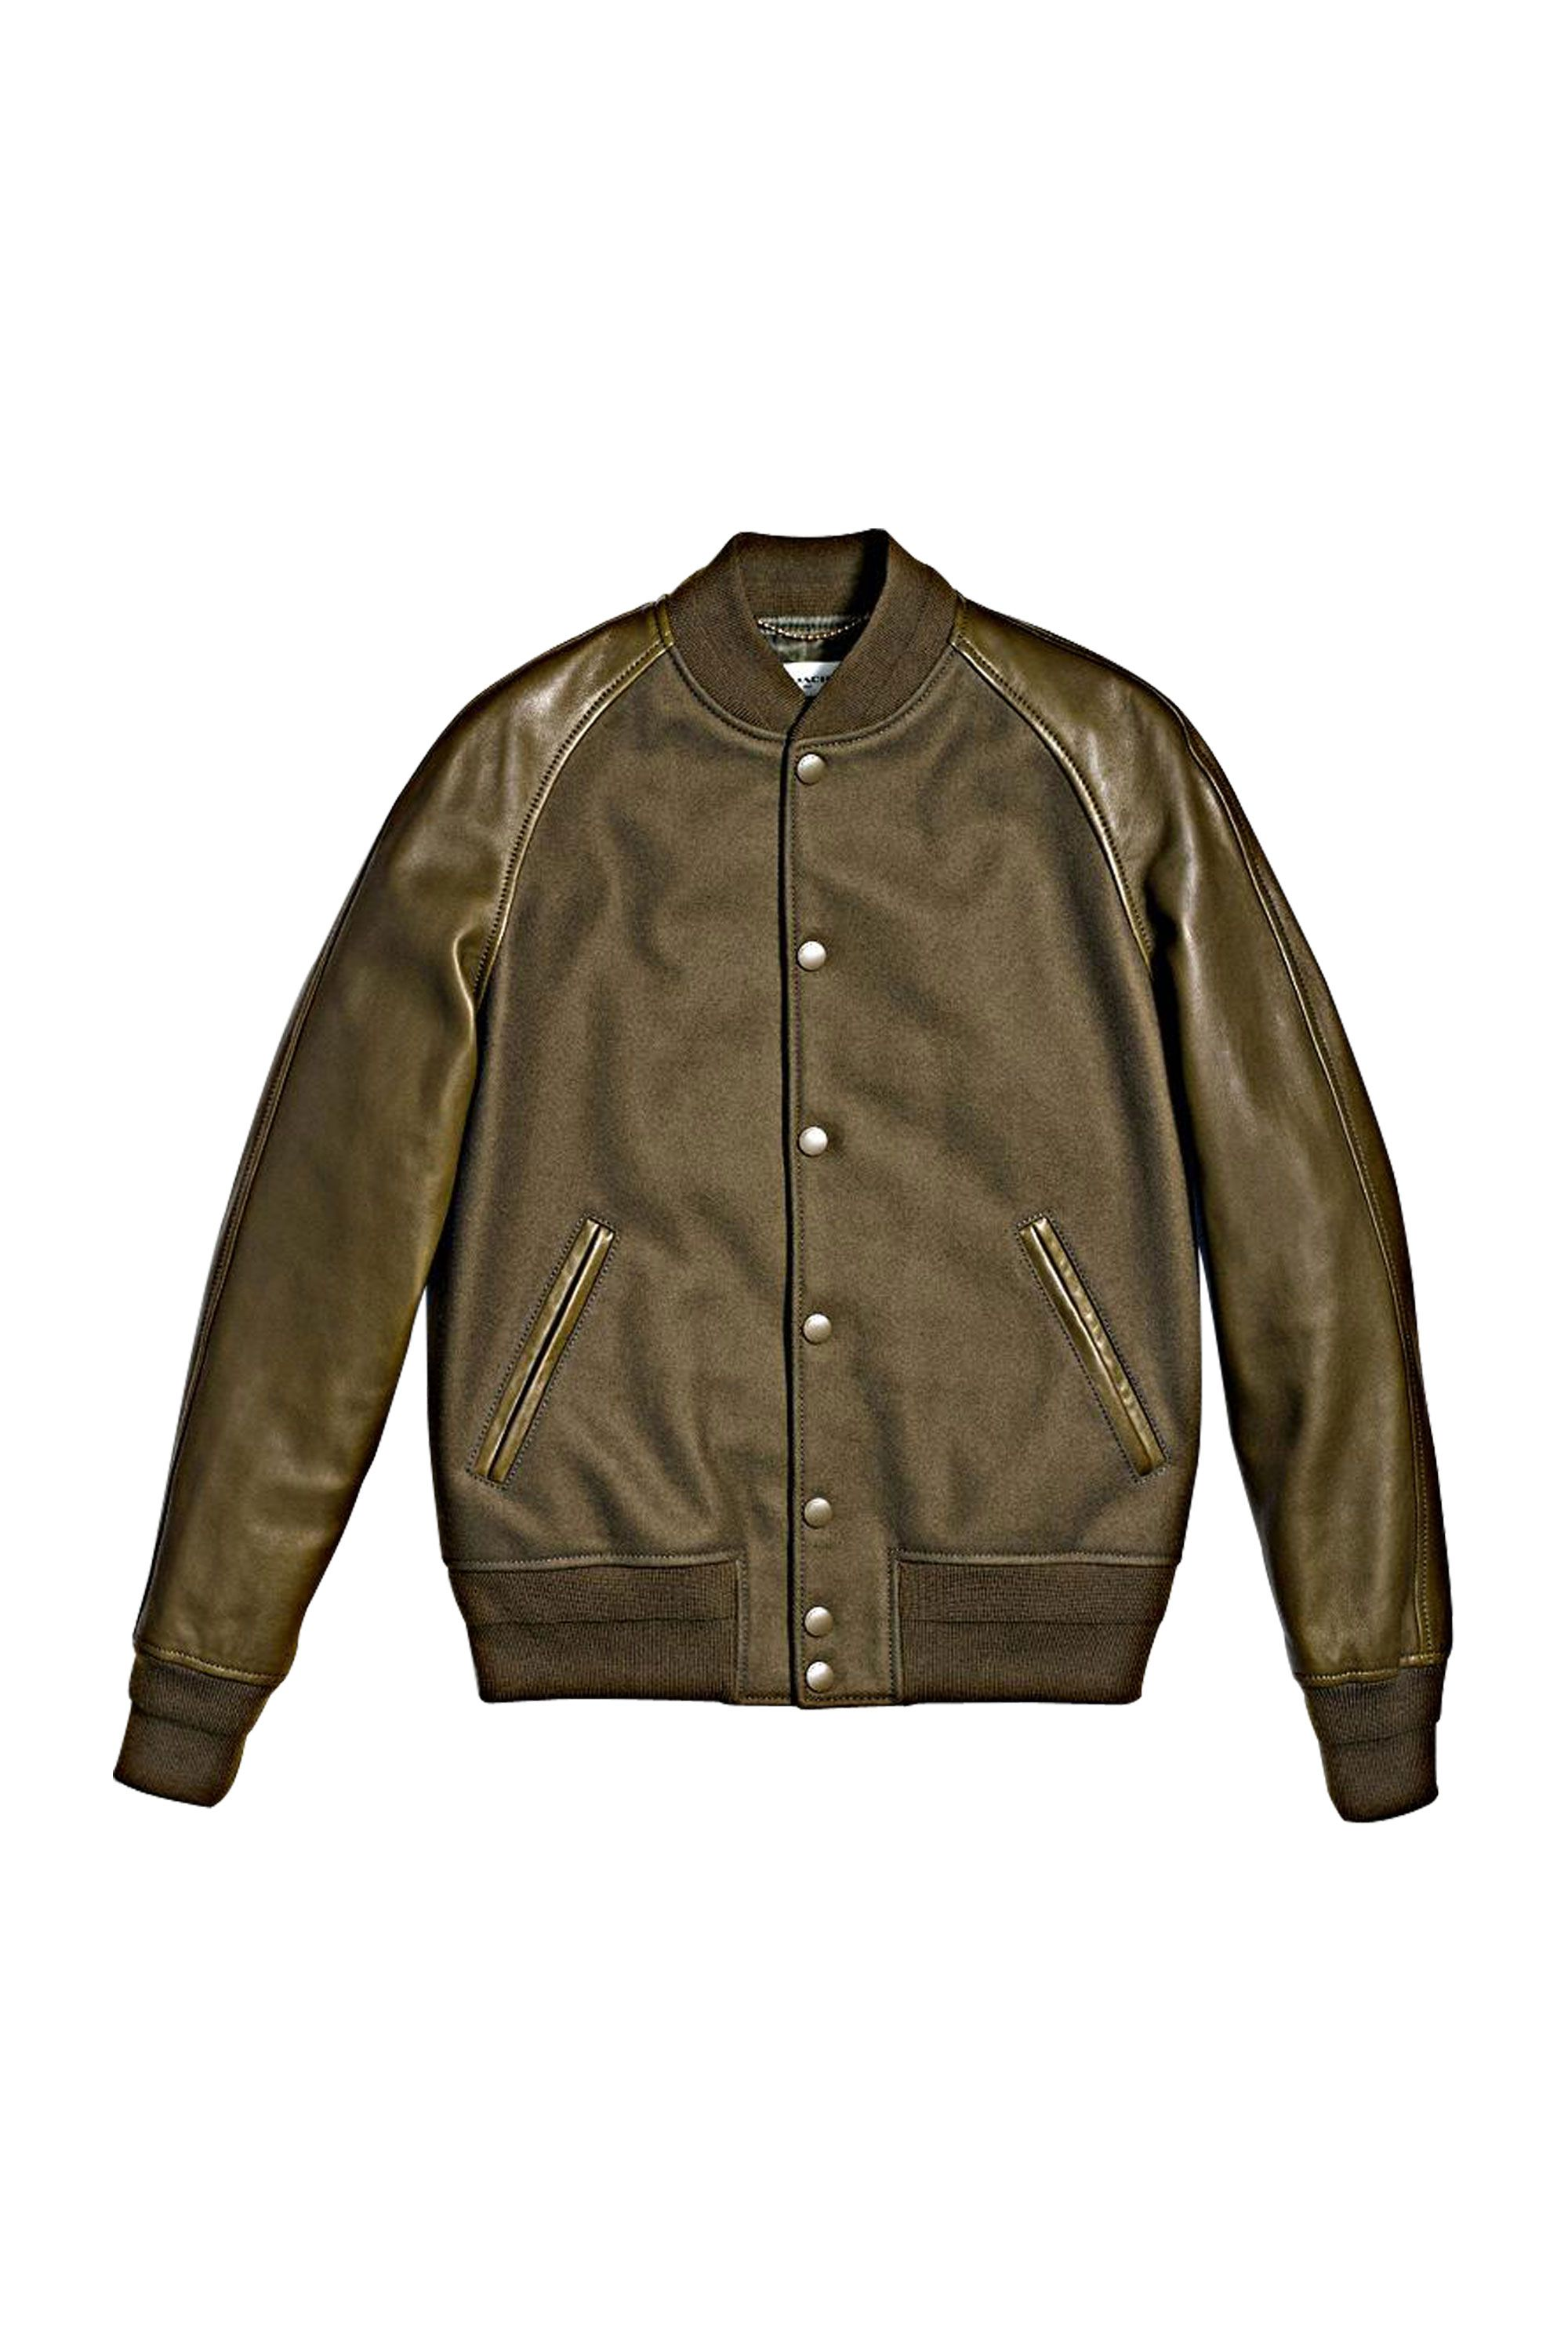 "<p>Those that coveted a letterman jacket in high school can embrace the same look in adulthood. Drape t<span class=""redactor-invisible-space"" style=""line-height: 1.6em; background-color: initial;"" rel=""line-height: 1.6em; background-color: initial;"" data-verified=""redactor"" data-redactor-tag=""span"" data-redactor-style=""line-height: 1.6em; background-color: initial;"">his luxe take on an all-American silhouette<span class=""redactor-invisible-space"" data-verified=""redactor"" data-redactor-tag=""span"" data-redactor-class=""redactor-invisible-space""> over your shoulders to ensure you l</span></span>ook like a jock without ever breaking a sweat. </p><p><em data-redactor-tag=""em"">Coach 1941 Civilian Varsity Jacket, $795, <a rel=""noskim"" href=""http://www.coach.com/coach-mens-coats-civilian-varsity-jacket/86698.html?CID=D_B_ELL_11743"" target=""_blank"">coach.com</a></em><br></p>"